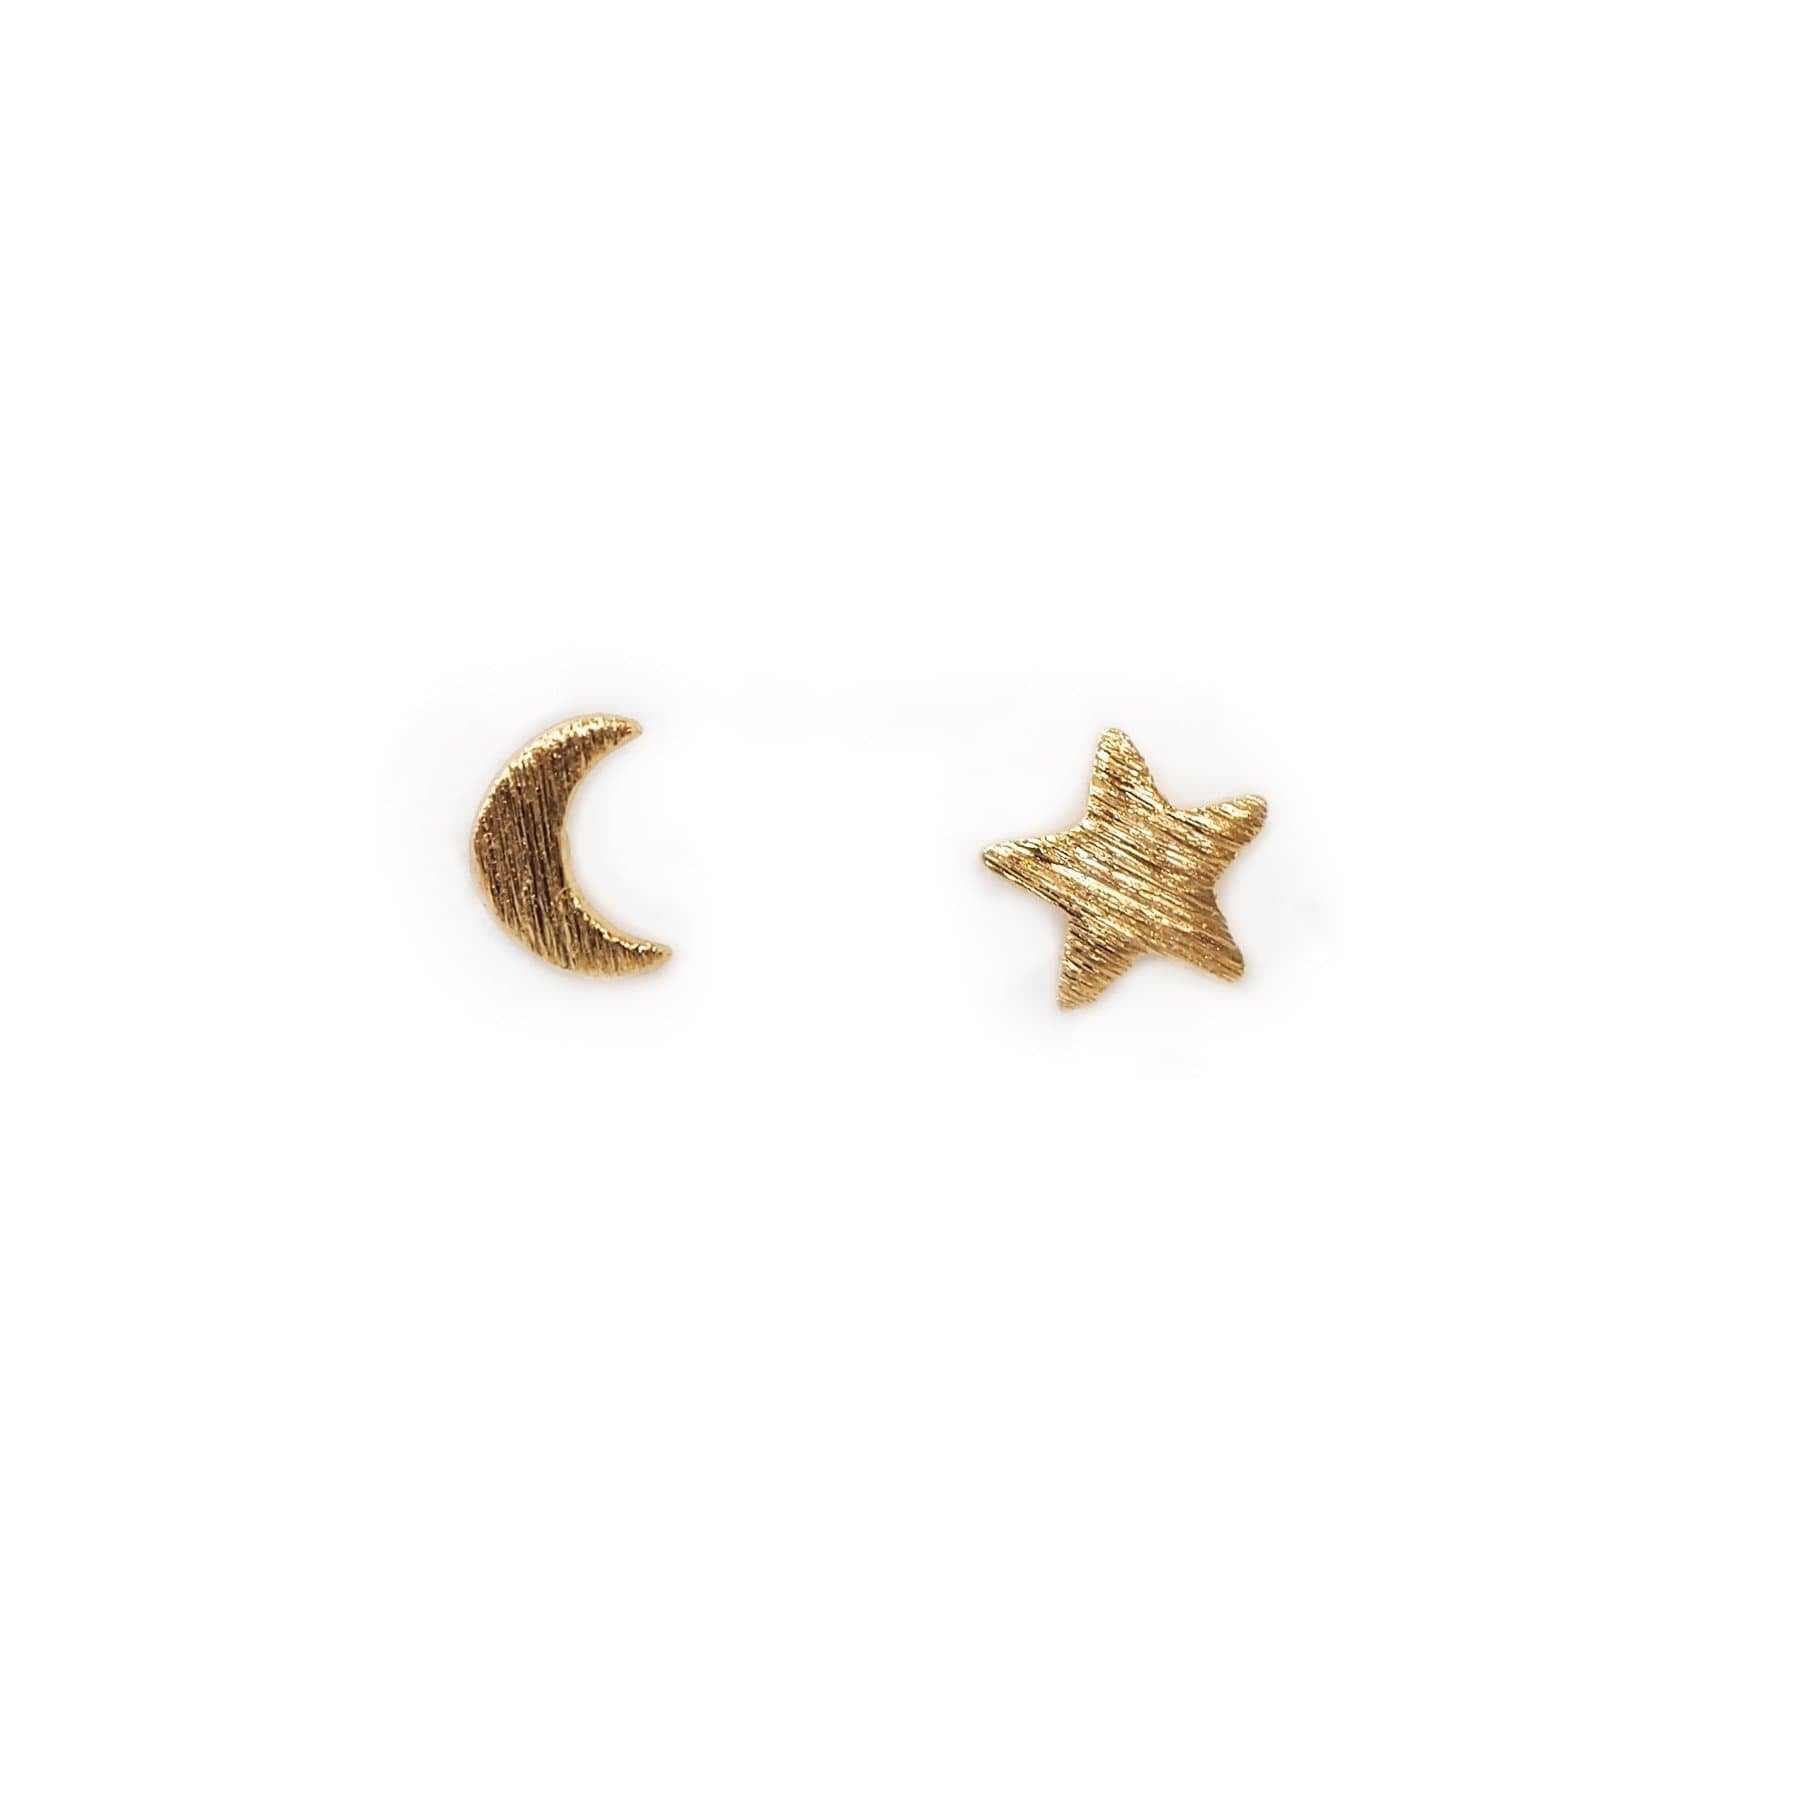 Moon & Star Stud Earrings, Earrings, adorn512, adorn512